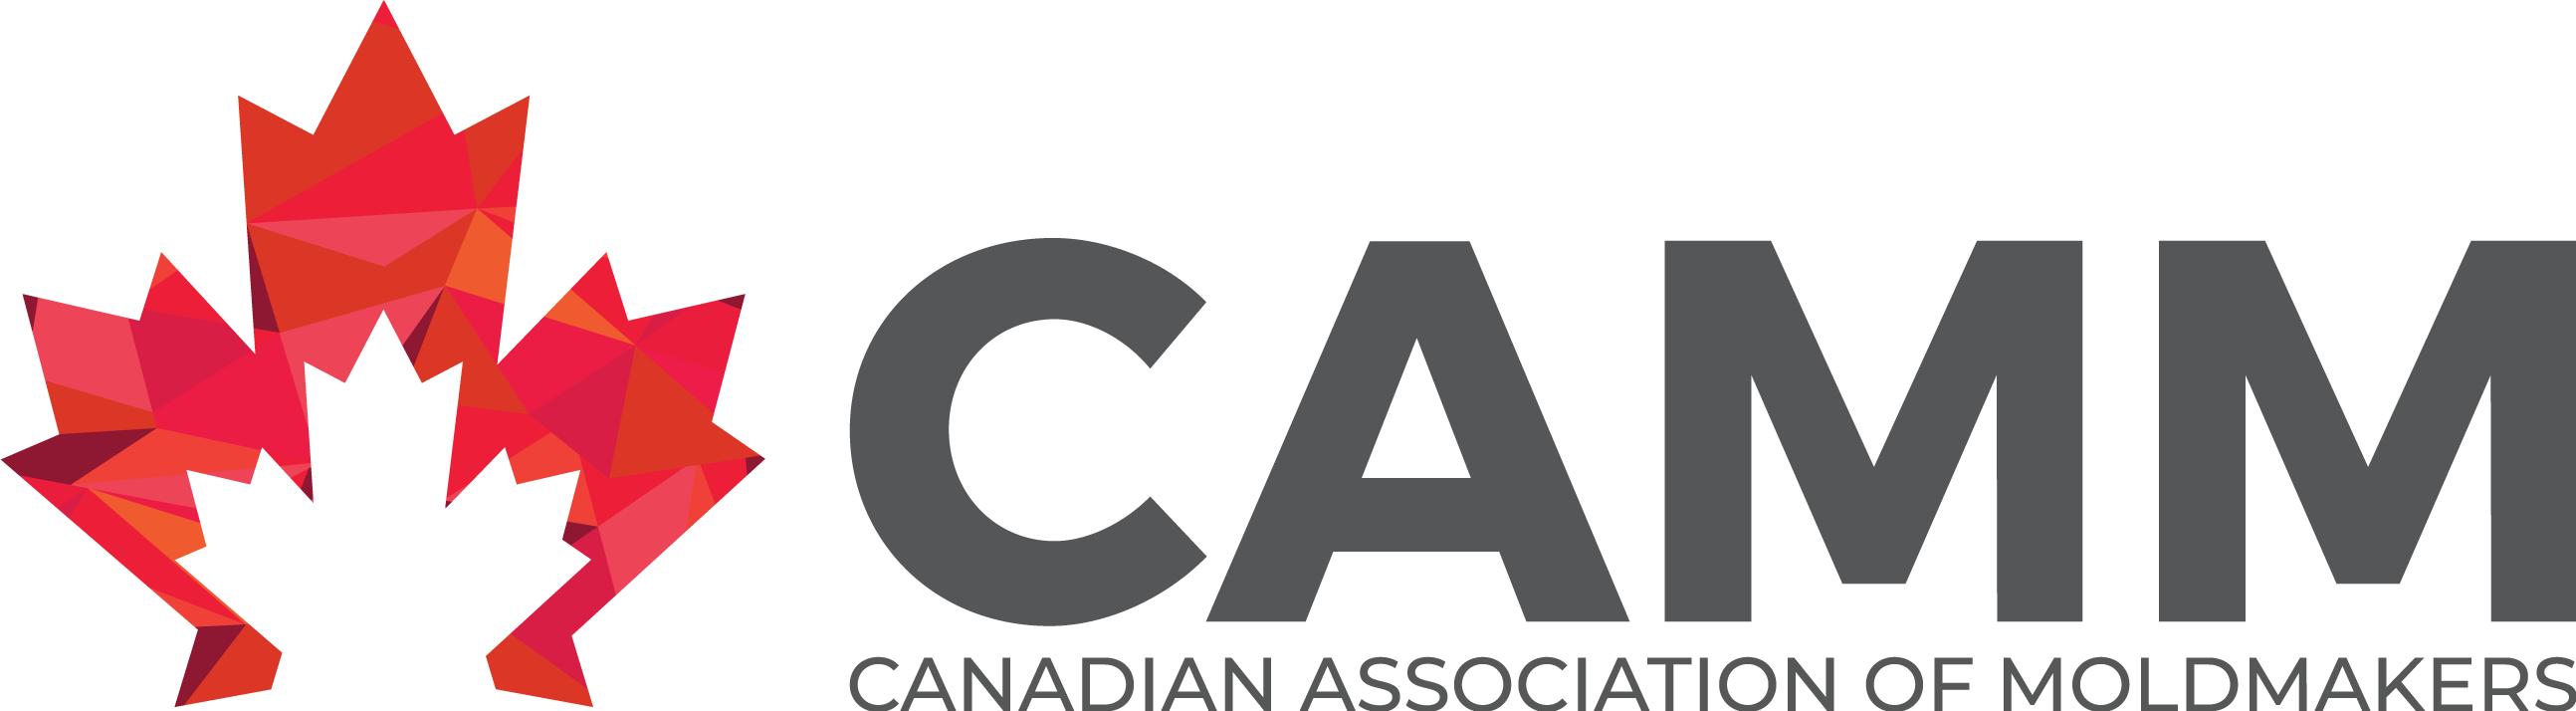 Canadian Association of Moldmakers